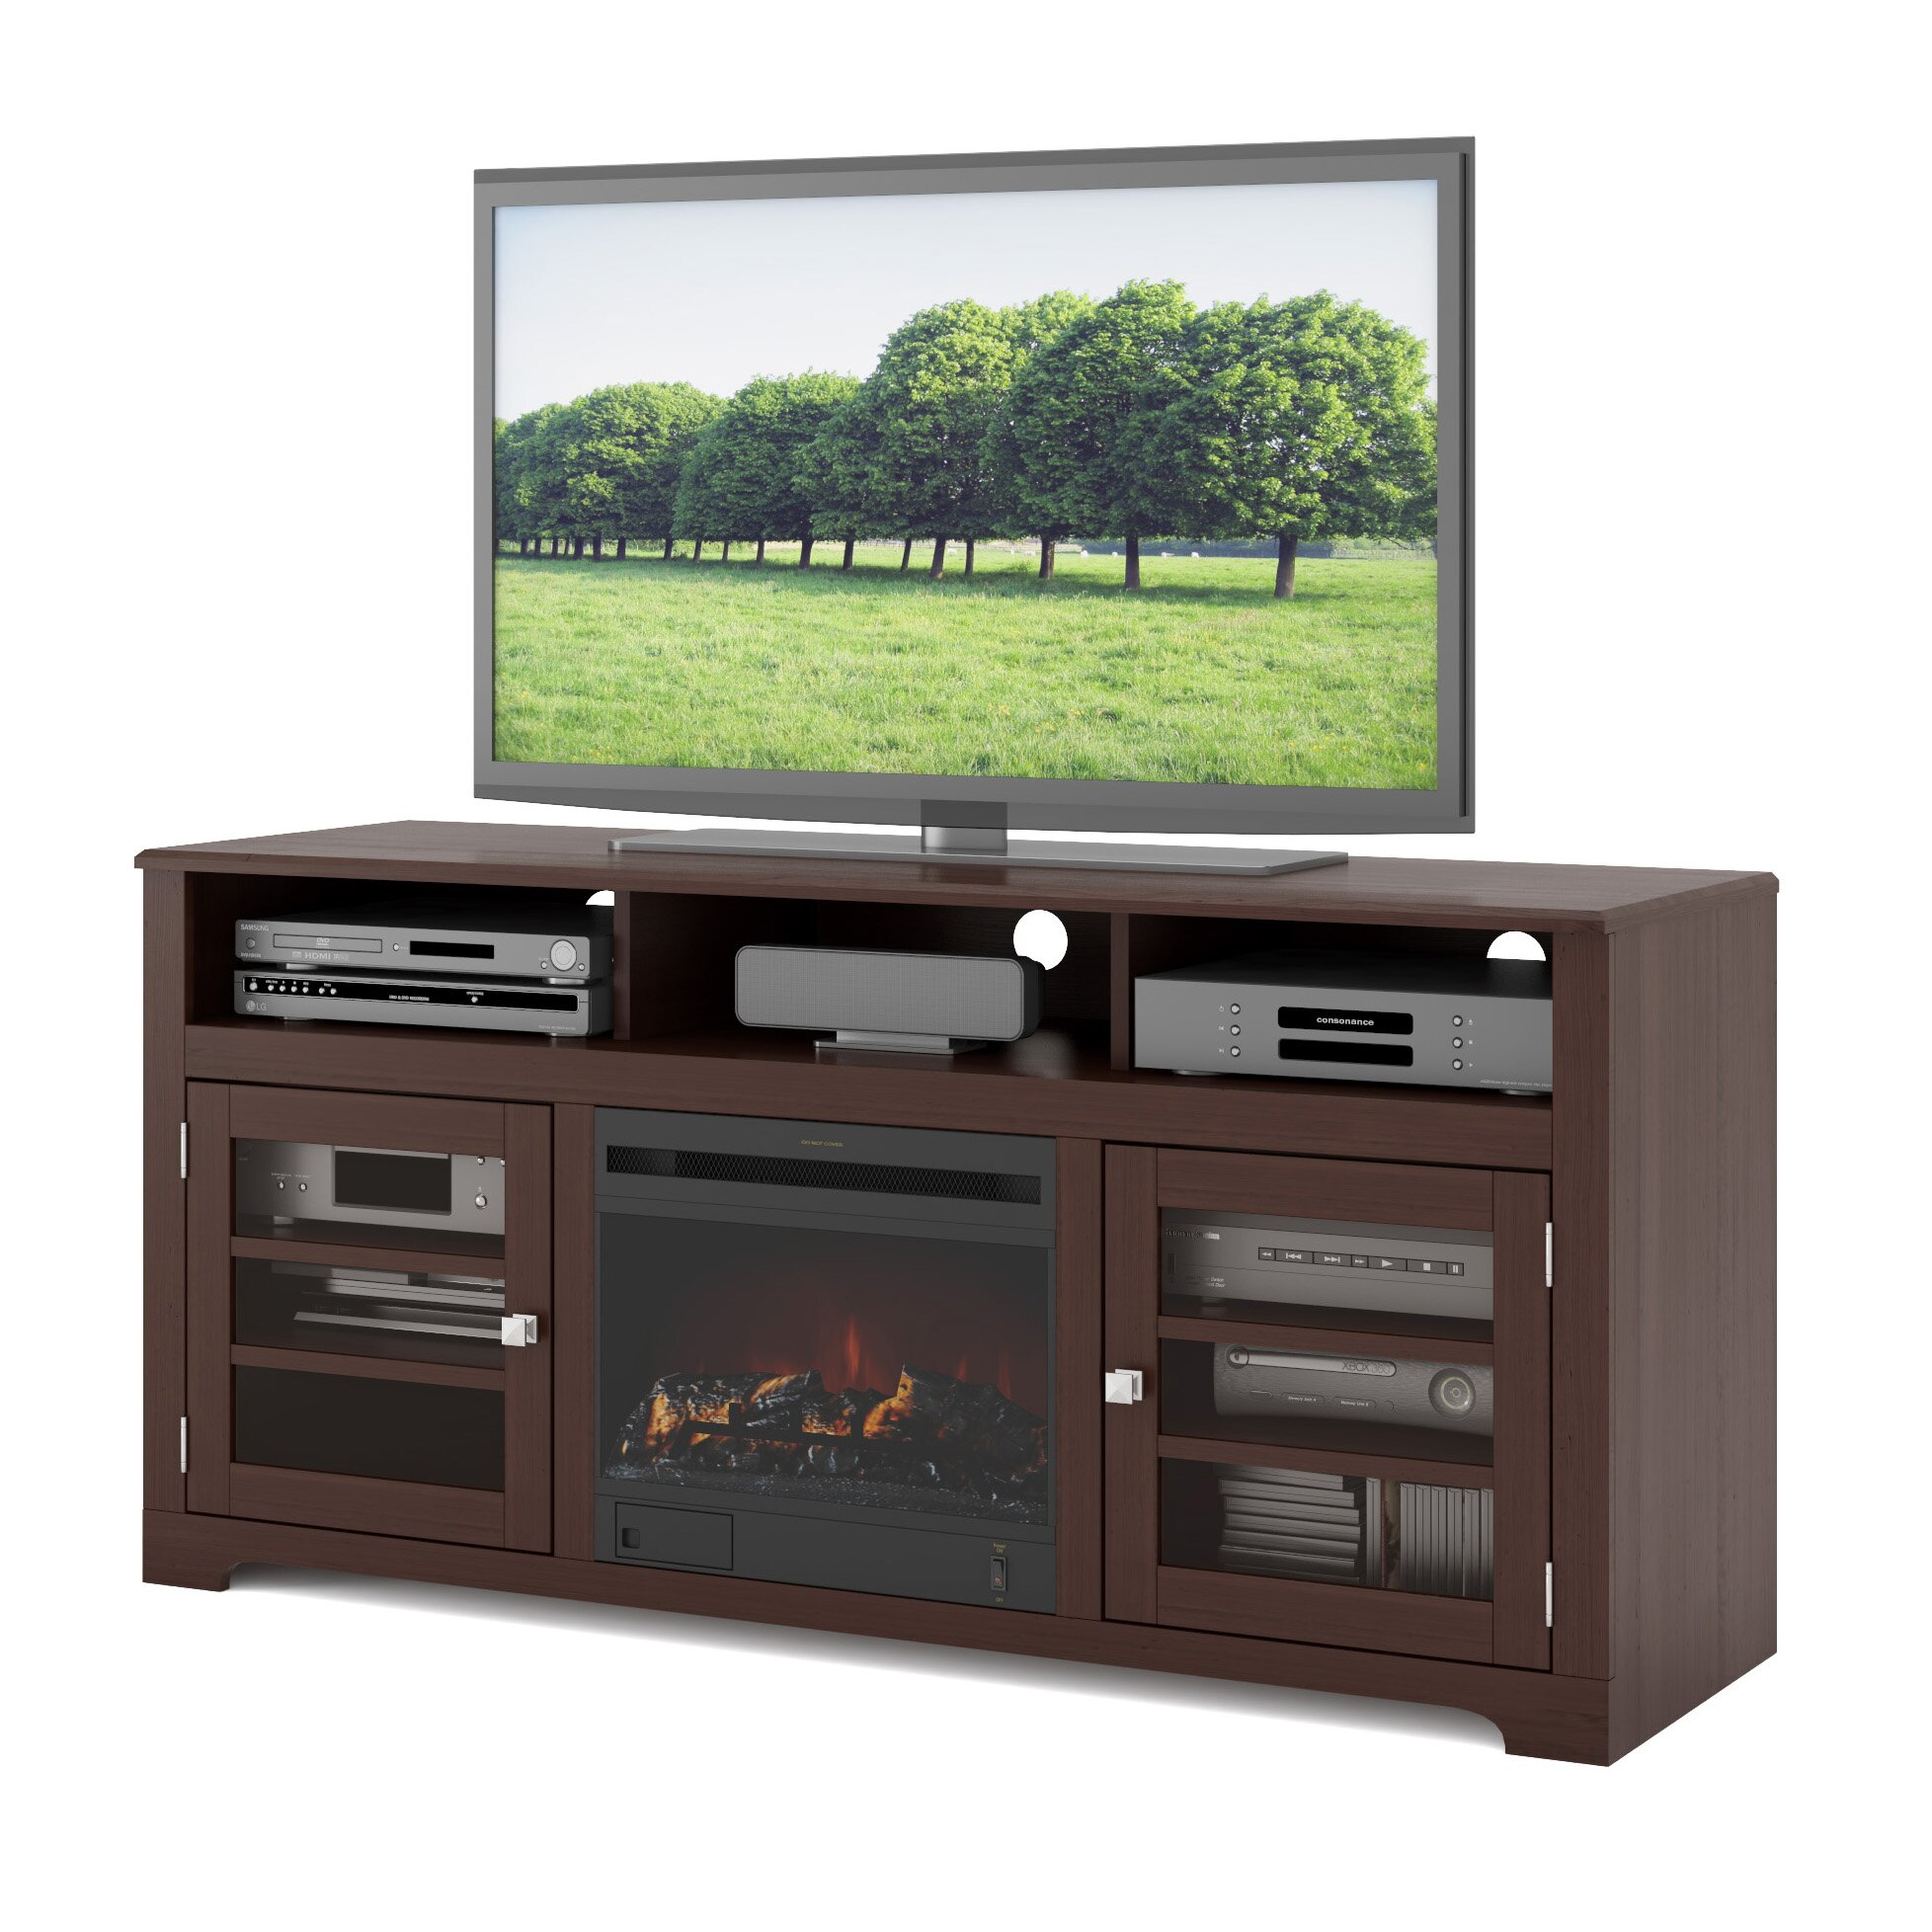 Dcor Design West Lake Tv Stand With Electric Fireplace Reviews Wayfair